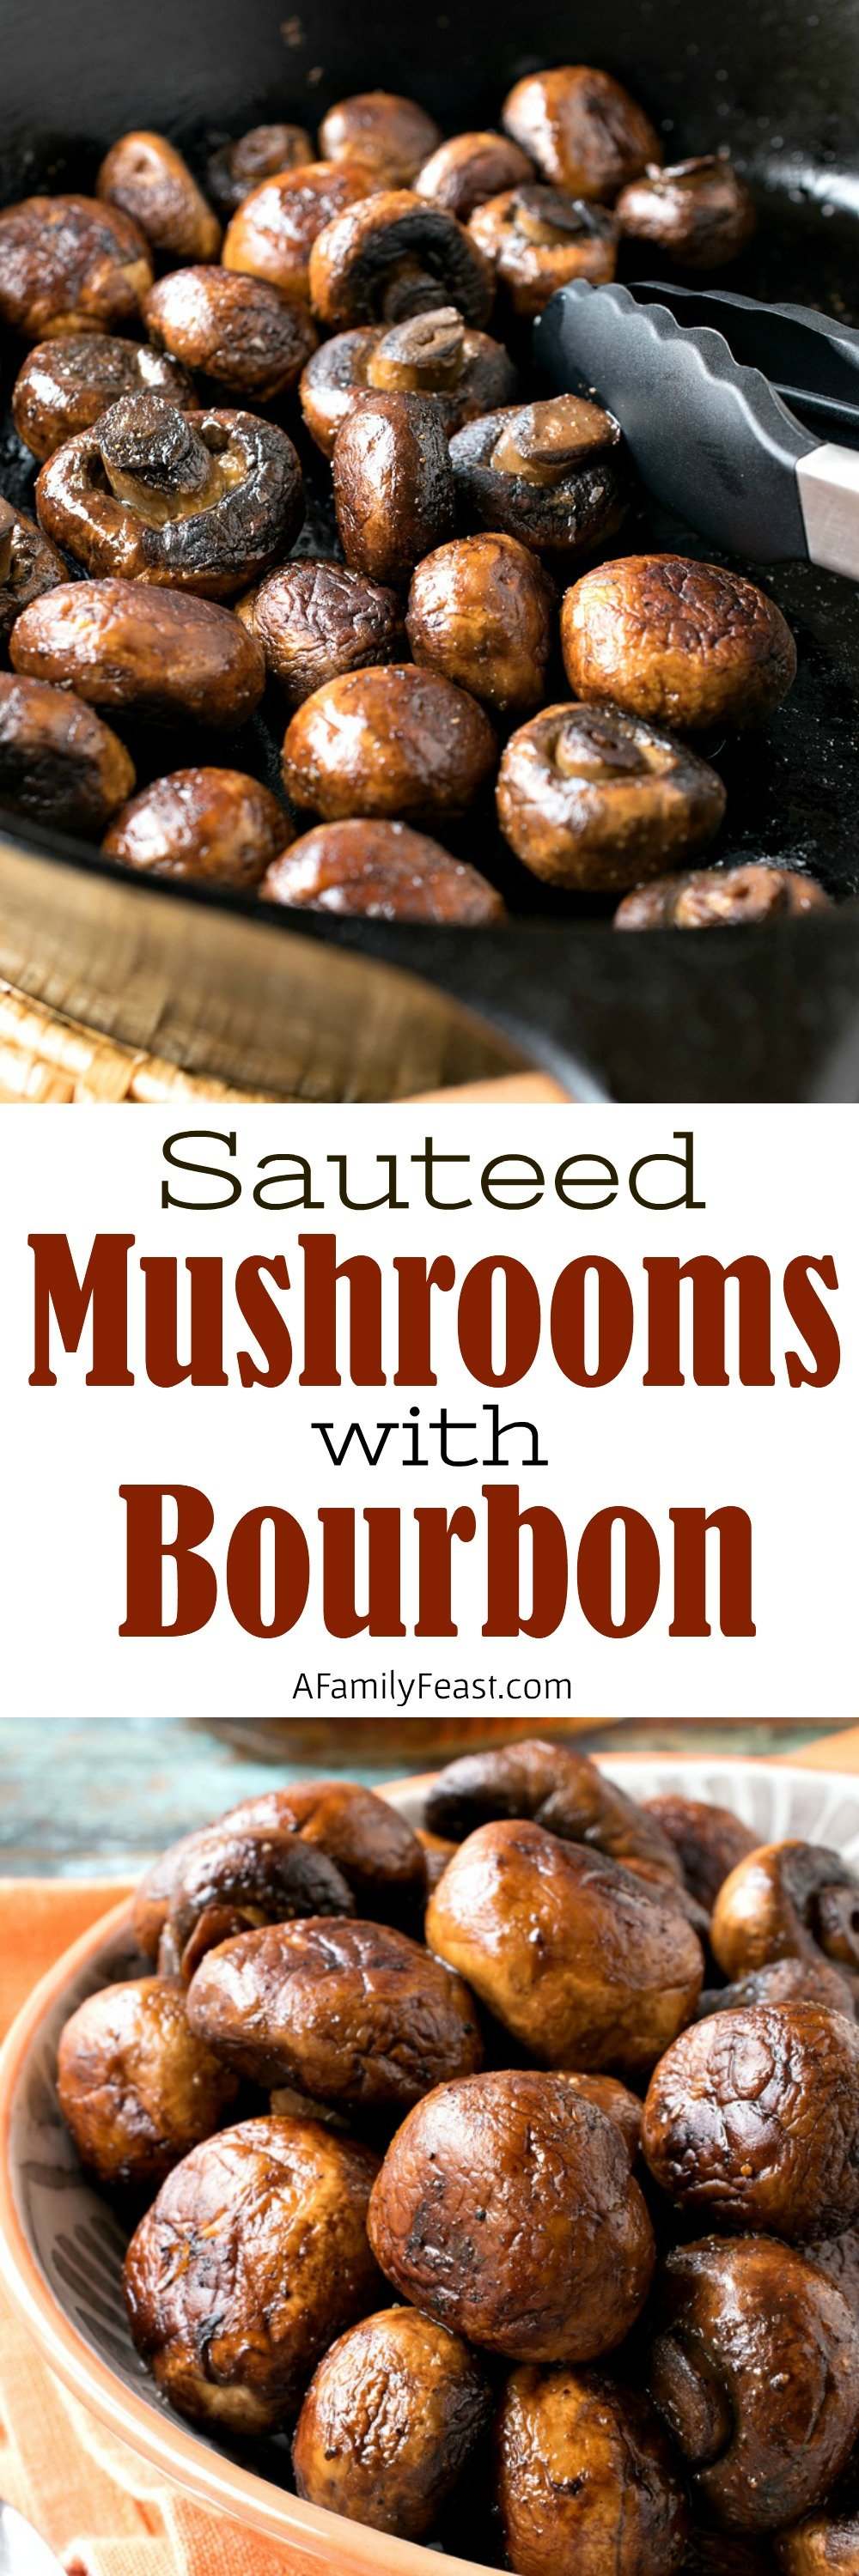 Sauteed Mushrooms with Bourbon